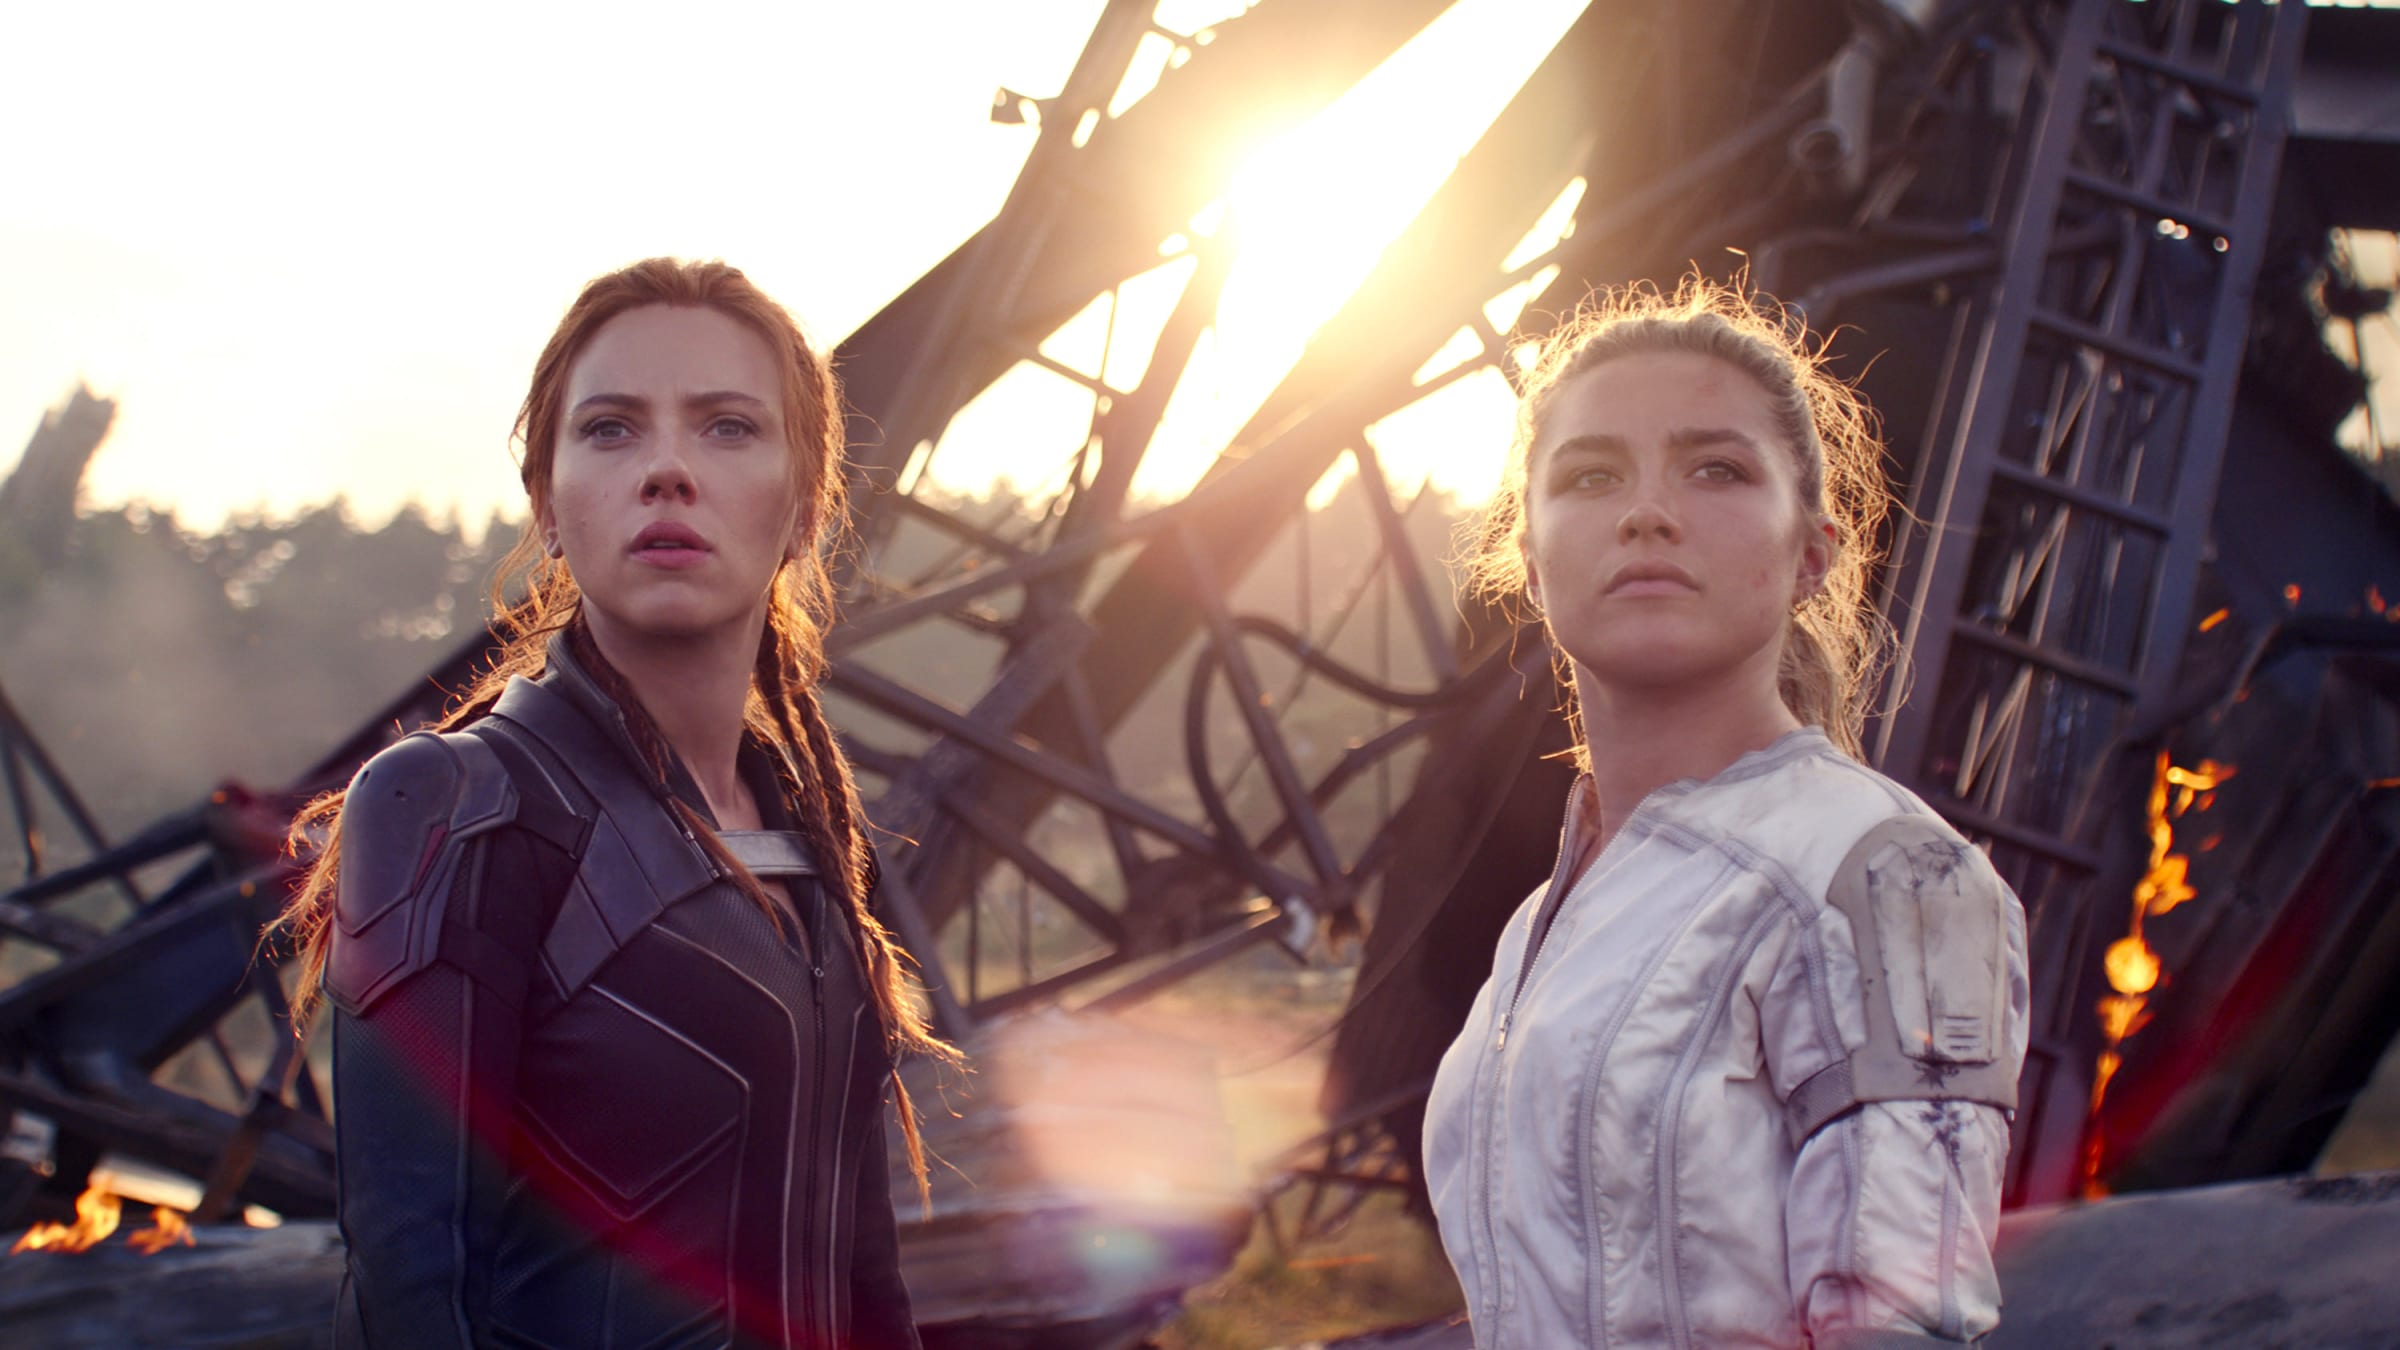 Black Widow's personal journey throughout the film is an example of story.